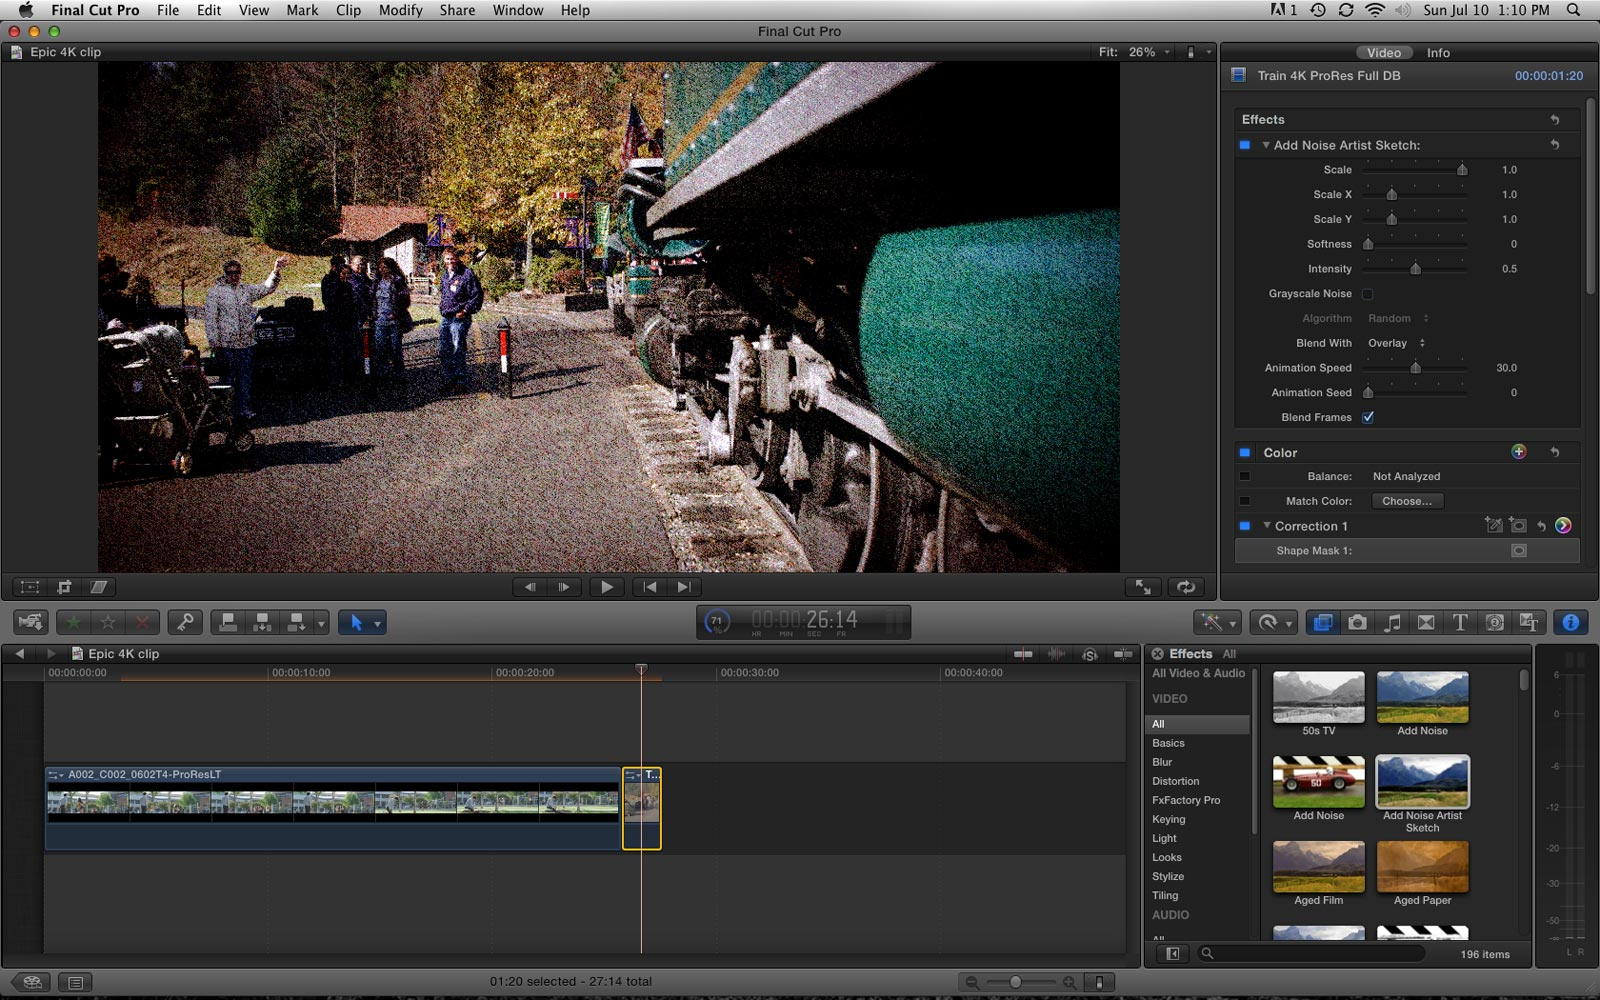 Import and Edit the Video in Final Cut Pro X 10.4